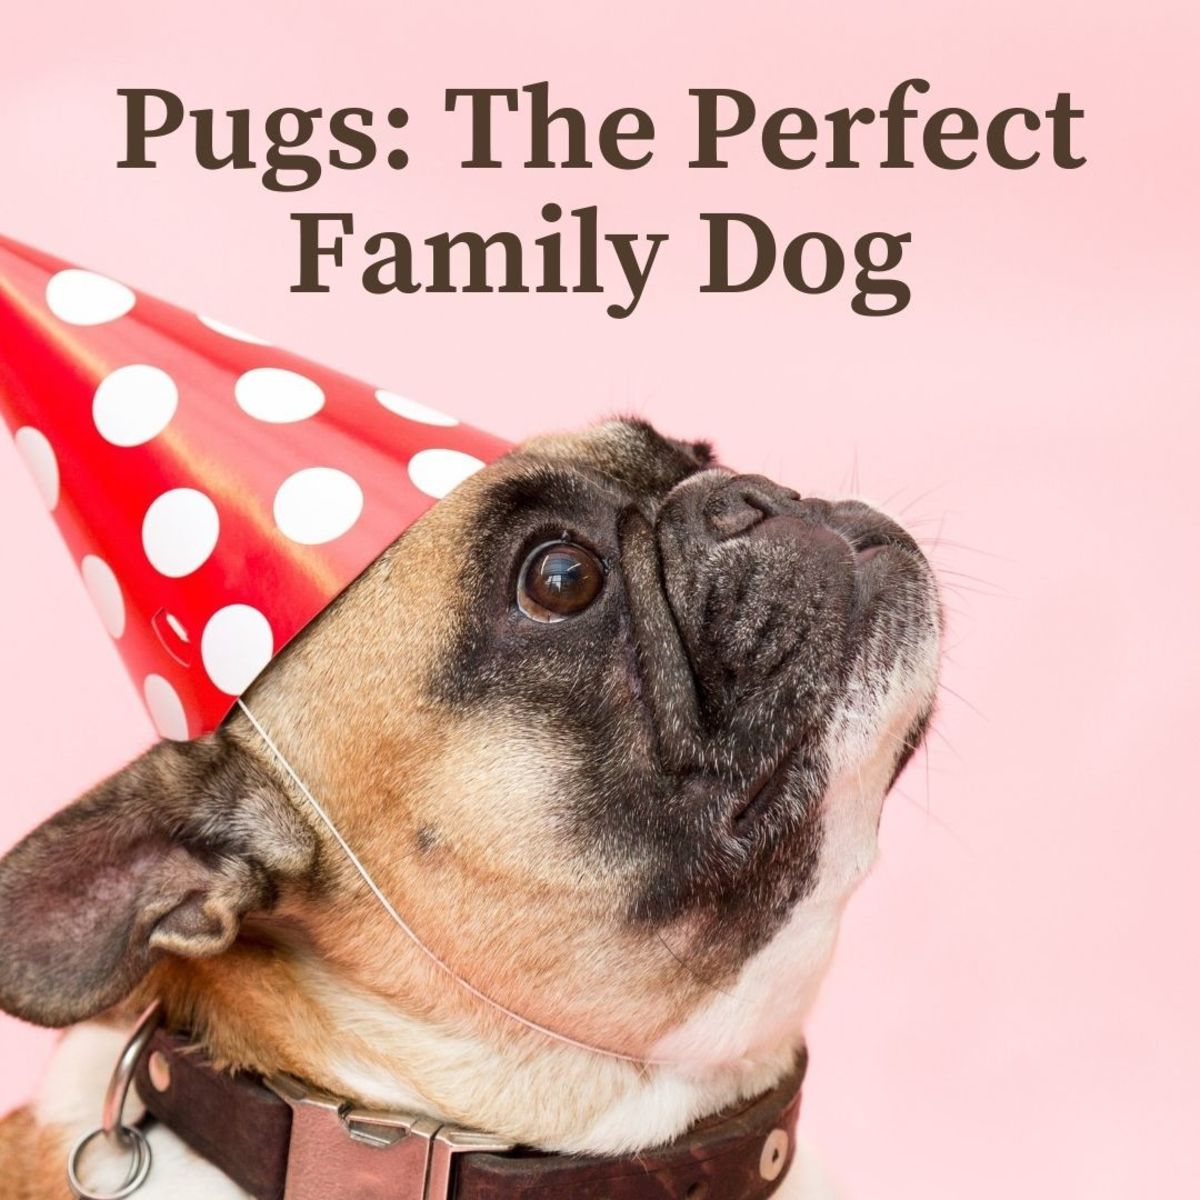 Why Pugs make great family pups